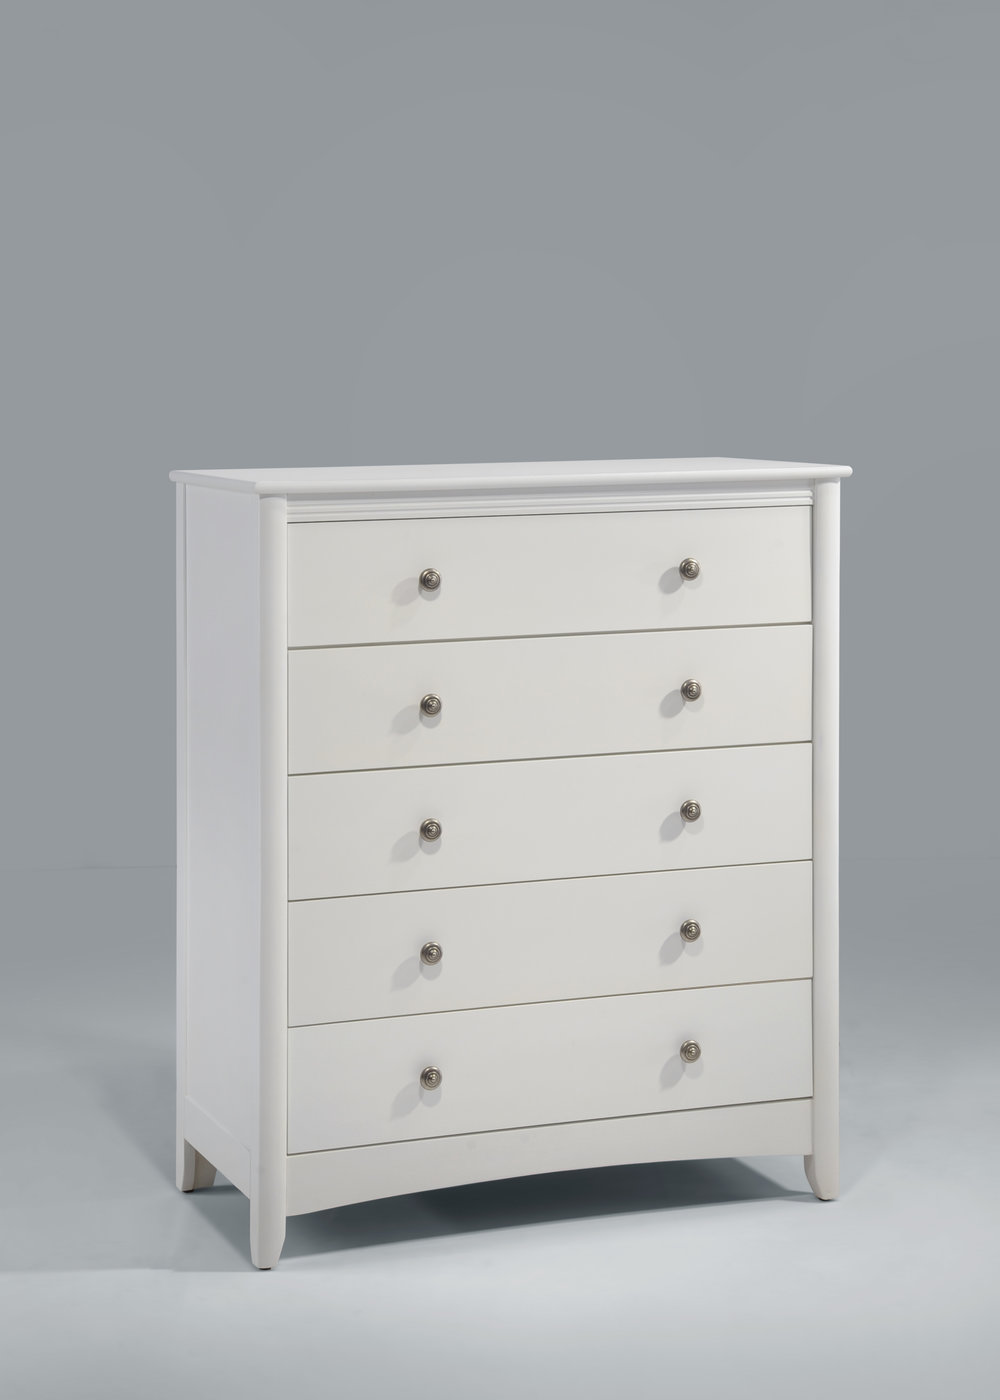 Secrets 5 Drawer Chest White.jpg